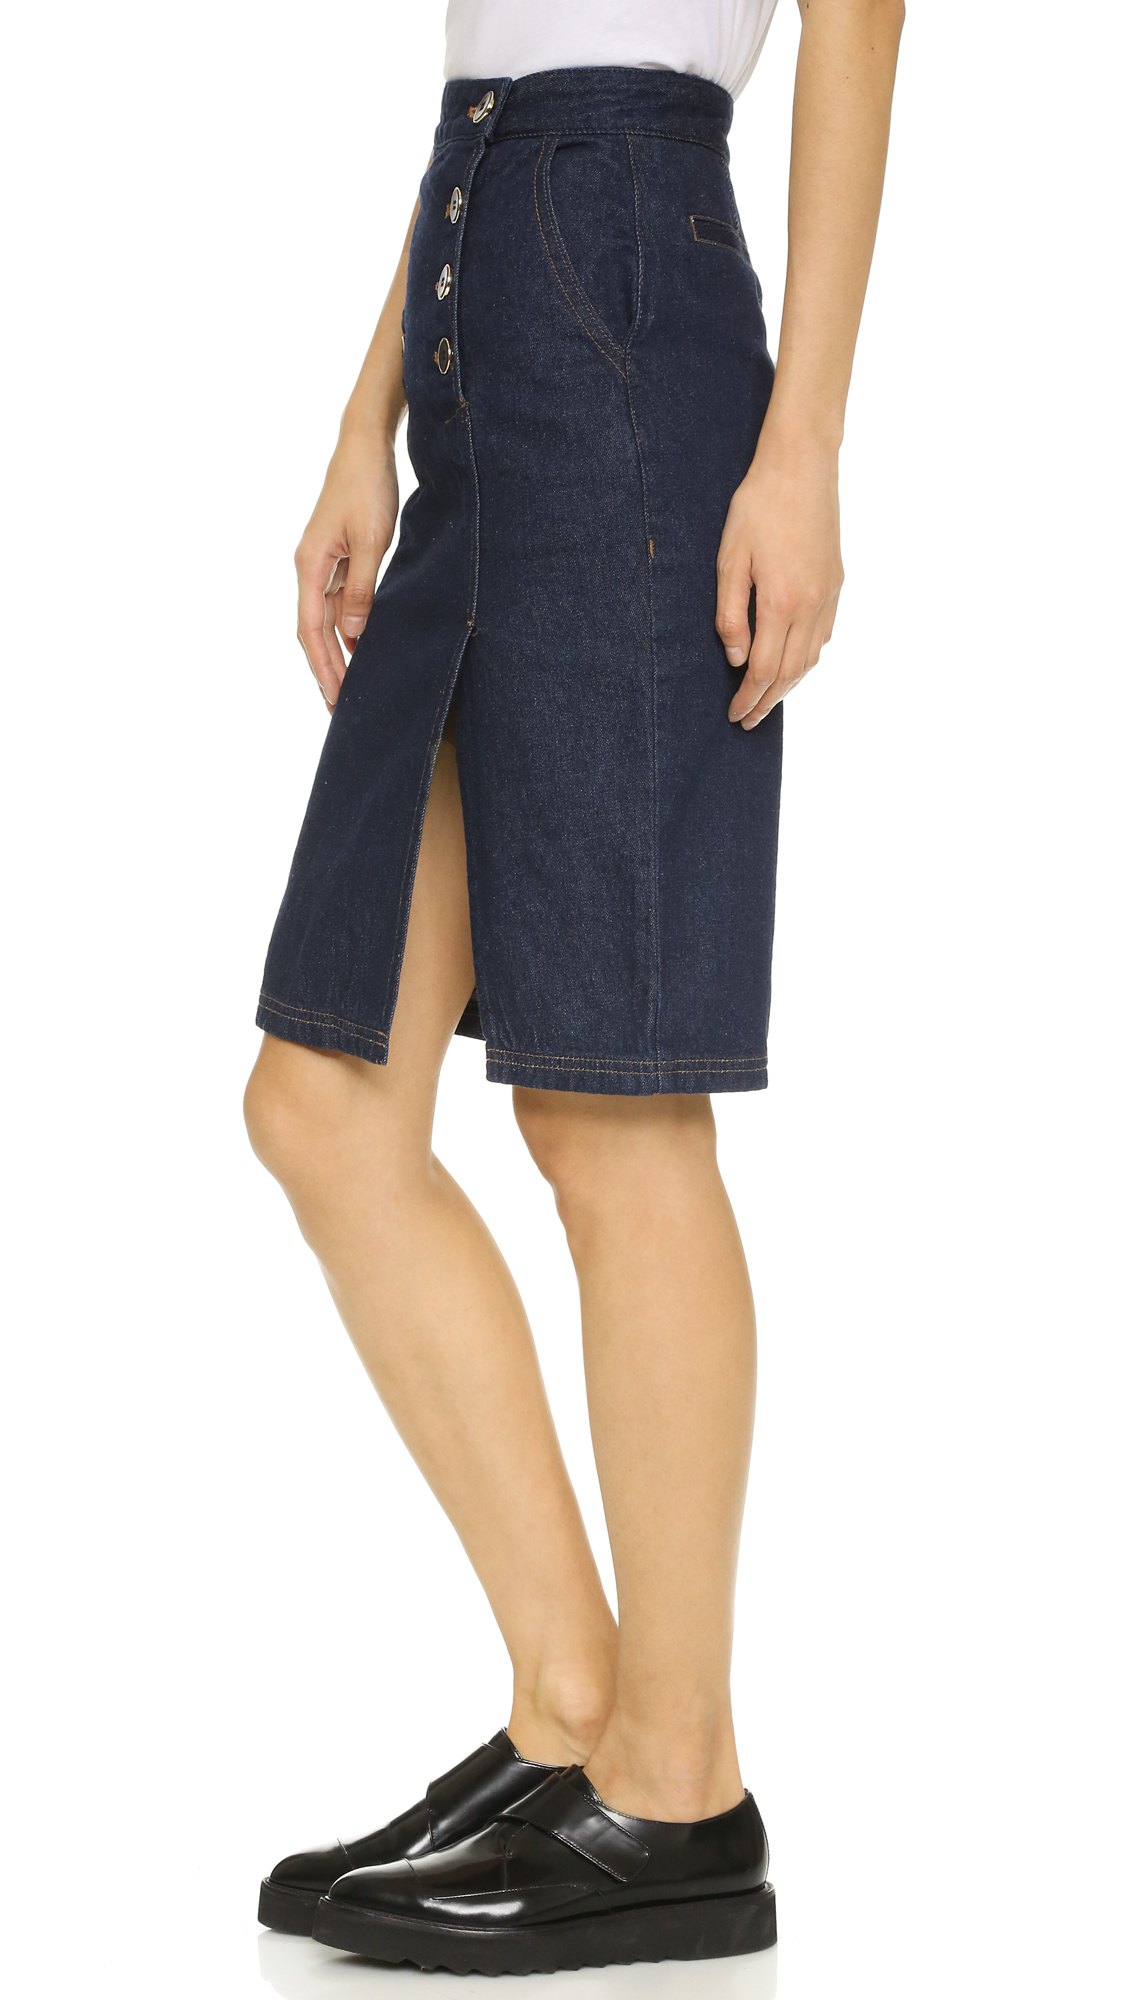 Two front and two back pockets with straight cut, fitted design. Small back slit ( inch slit in back of skirt) to allow for flexibility of movement. Internal adjustable waistband for sizing flexibility. Kosher Casual women's general sizing5/5(1).